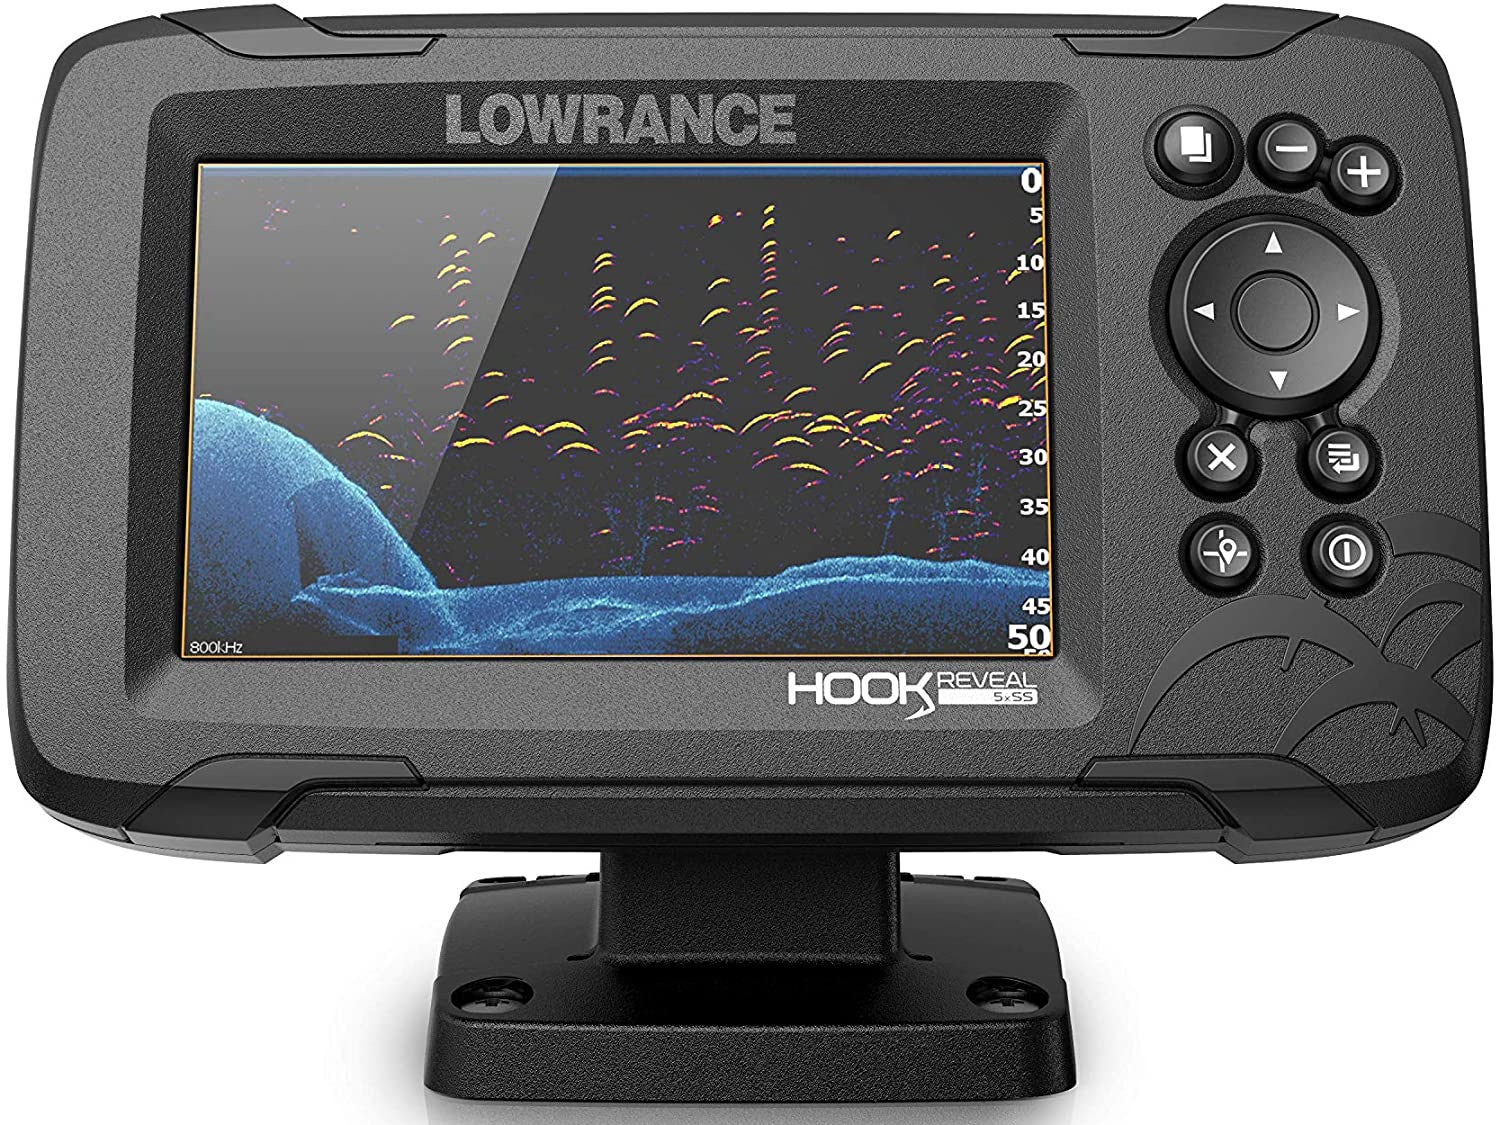 Lowrance HOOK Reveal 5x SplitShot Fish Finder is the best fish finder for kayak